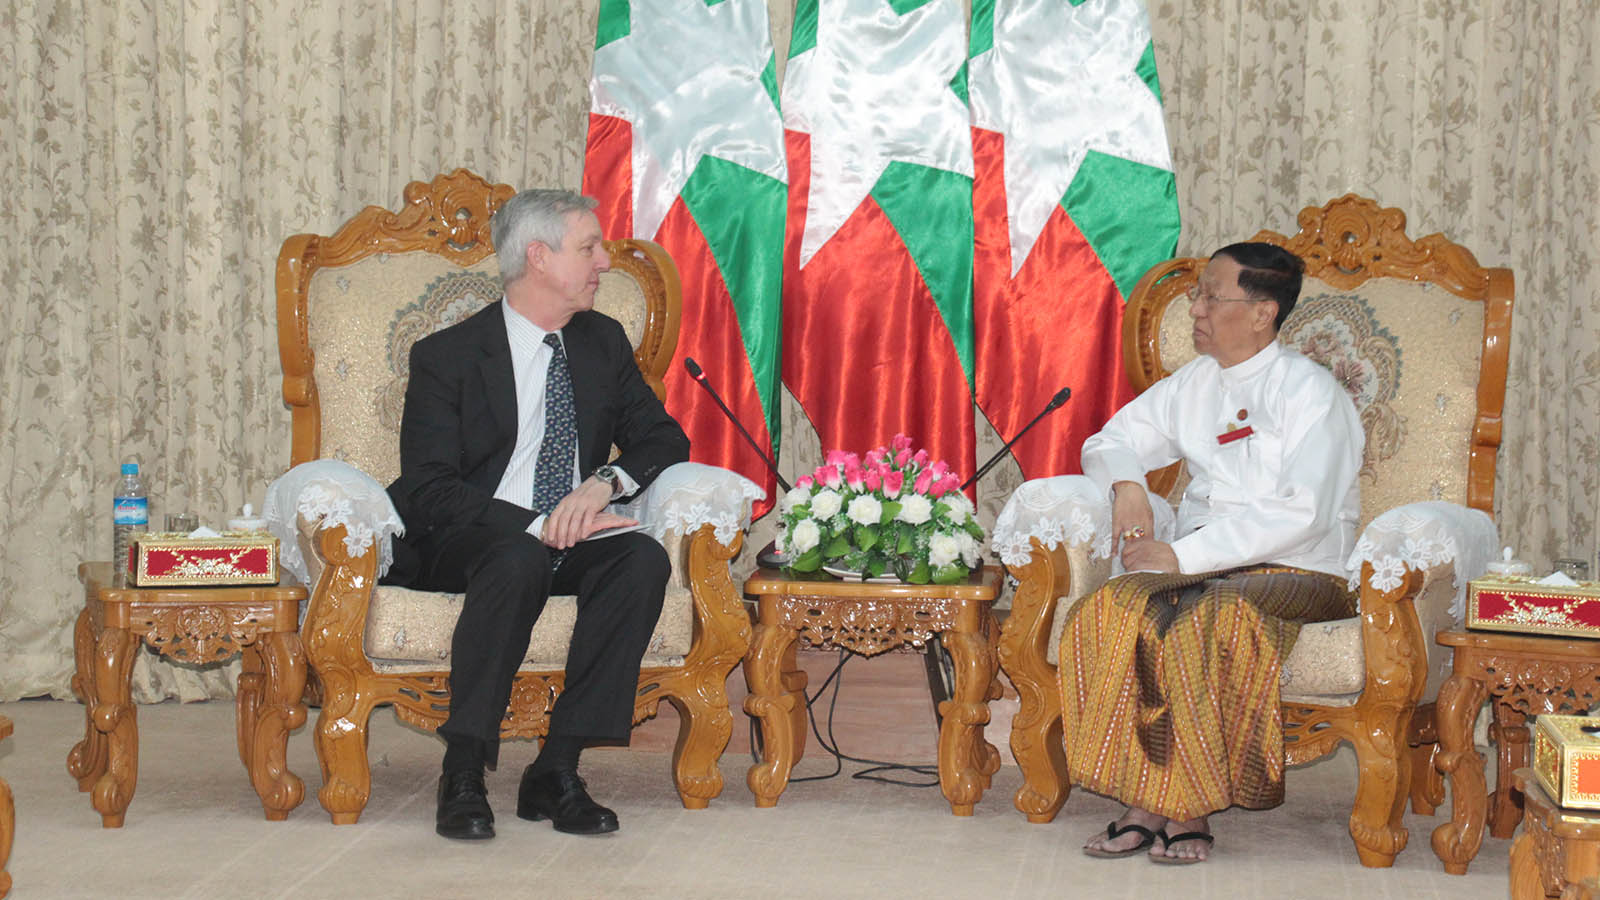 Union Election Commission Chairman U Hla Thein holds talk with Mr Tony Banbury, President of International Foundation for Electoral System, in Nay Pyi Taw yesterday. Photo: MNA